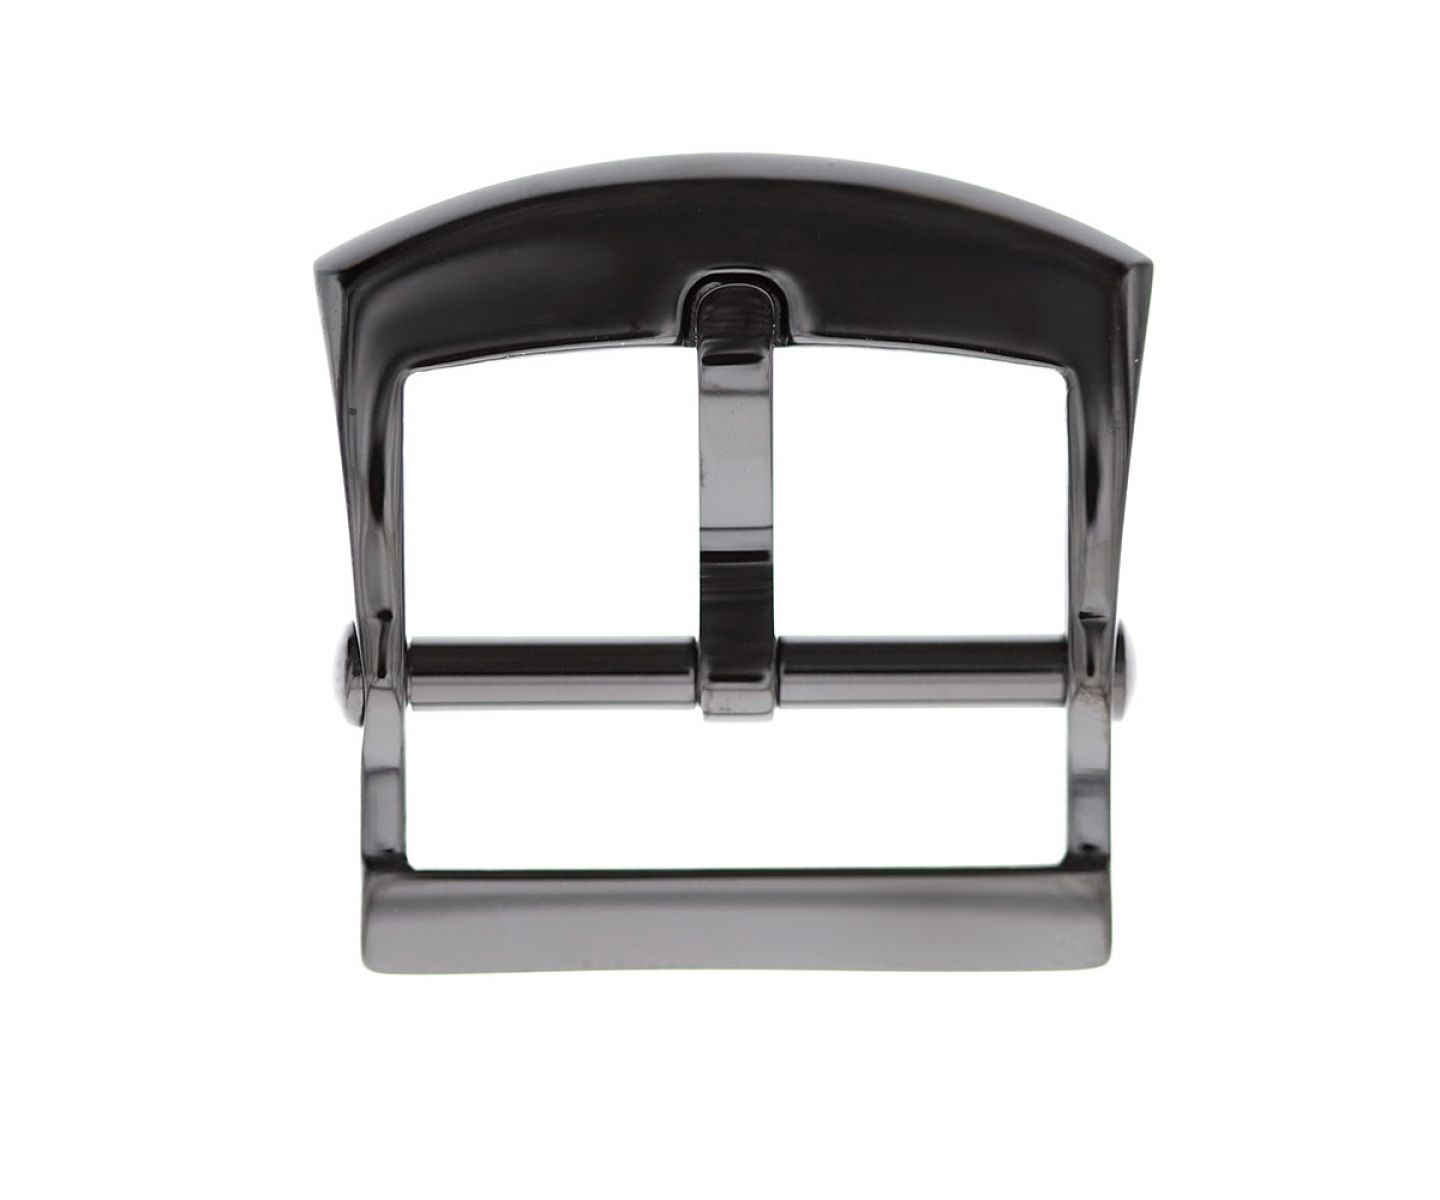 Stainless Steel High Grade Buckle 20mm. Black Gloss